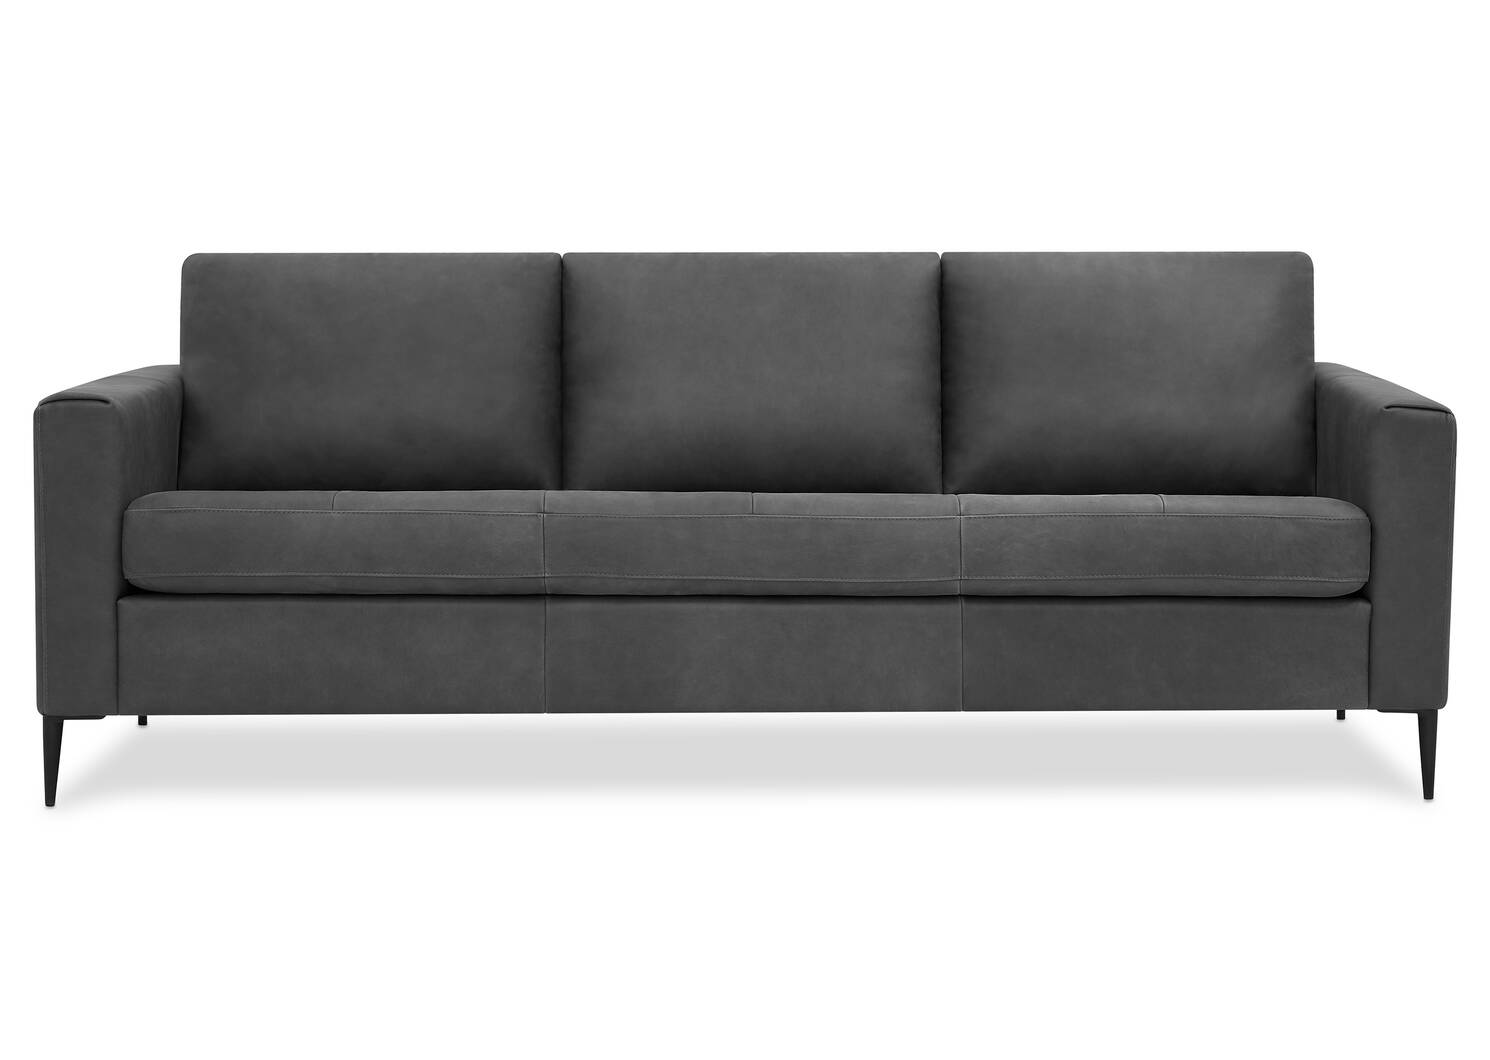 Lucca Leather Sofa